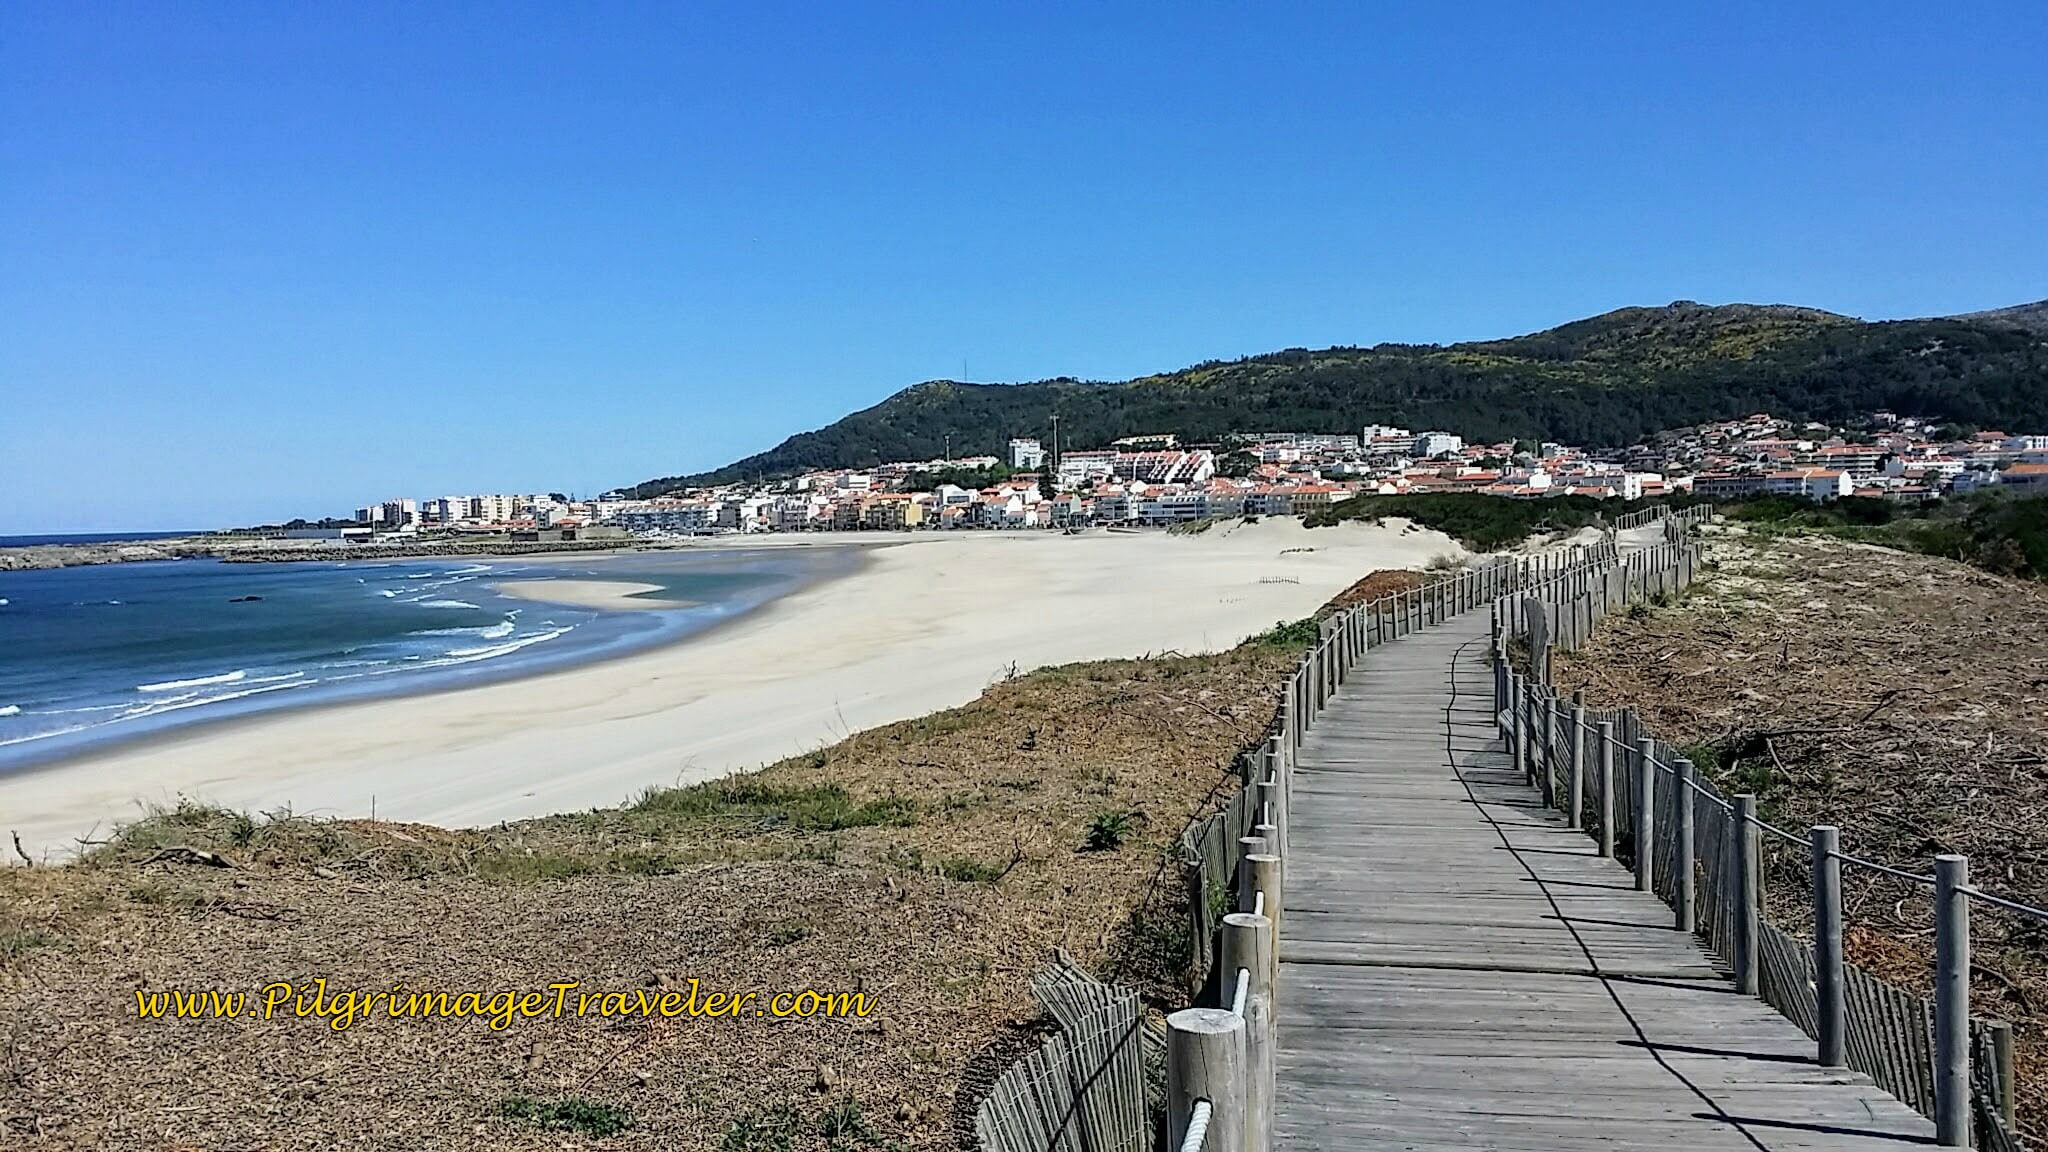 Boardwalks Abound on the Senda Litoral, Camino Portugués